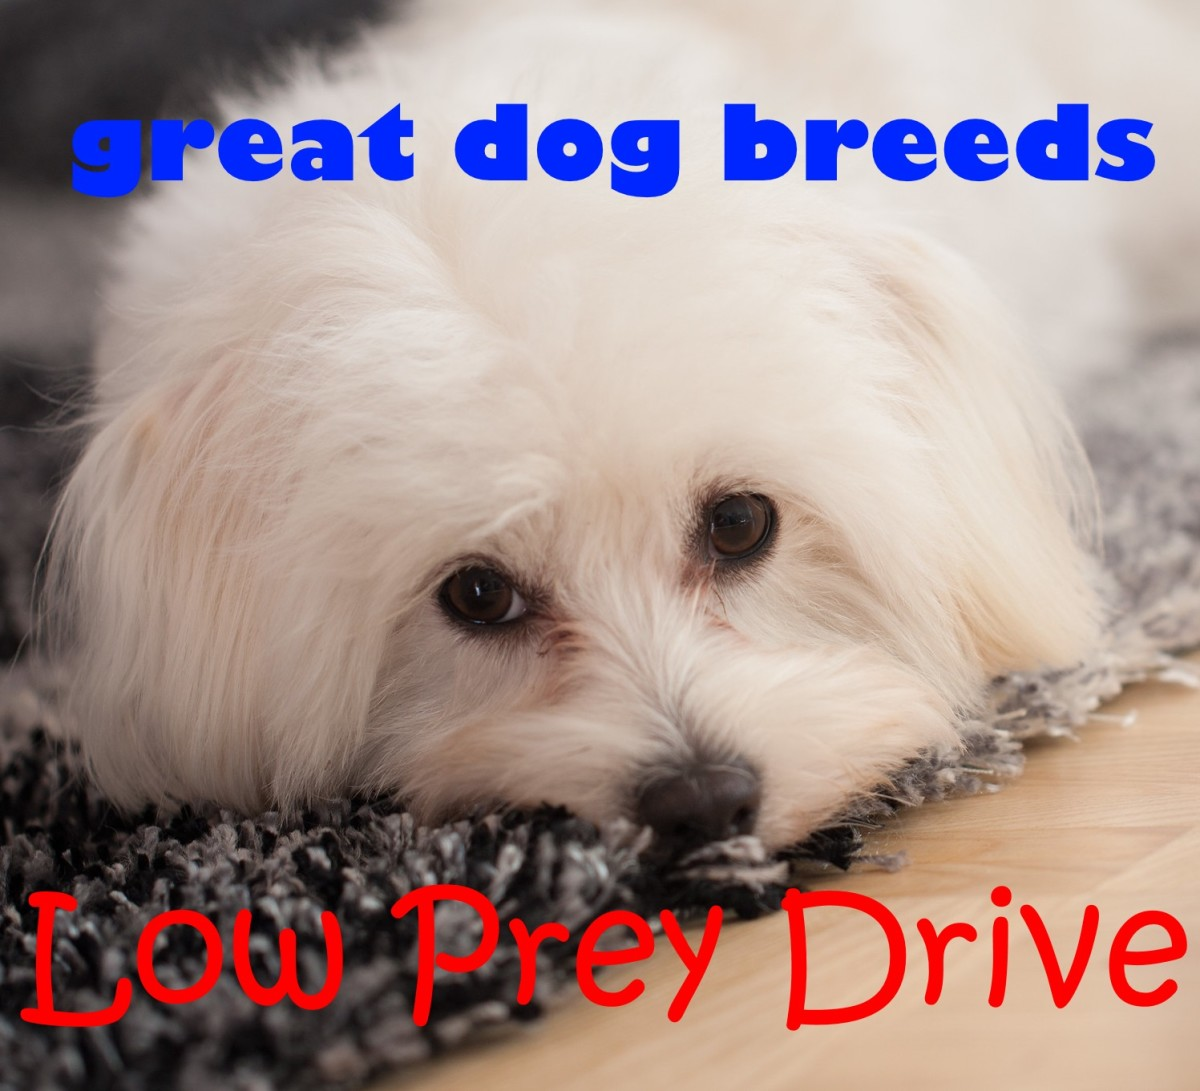 9 Great Dog Breeds With Low Prey Drive (Plus Which Breeds to Avoid)